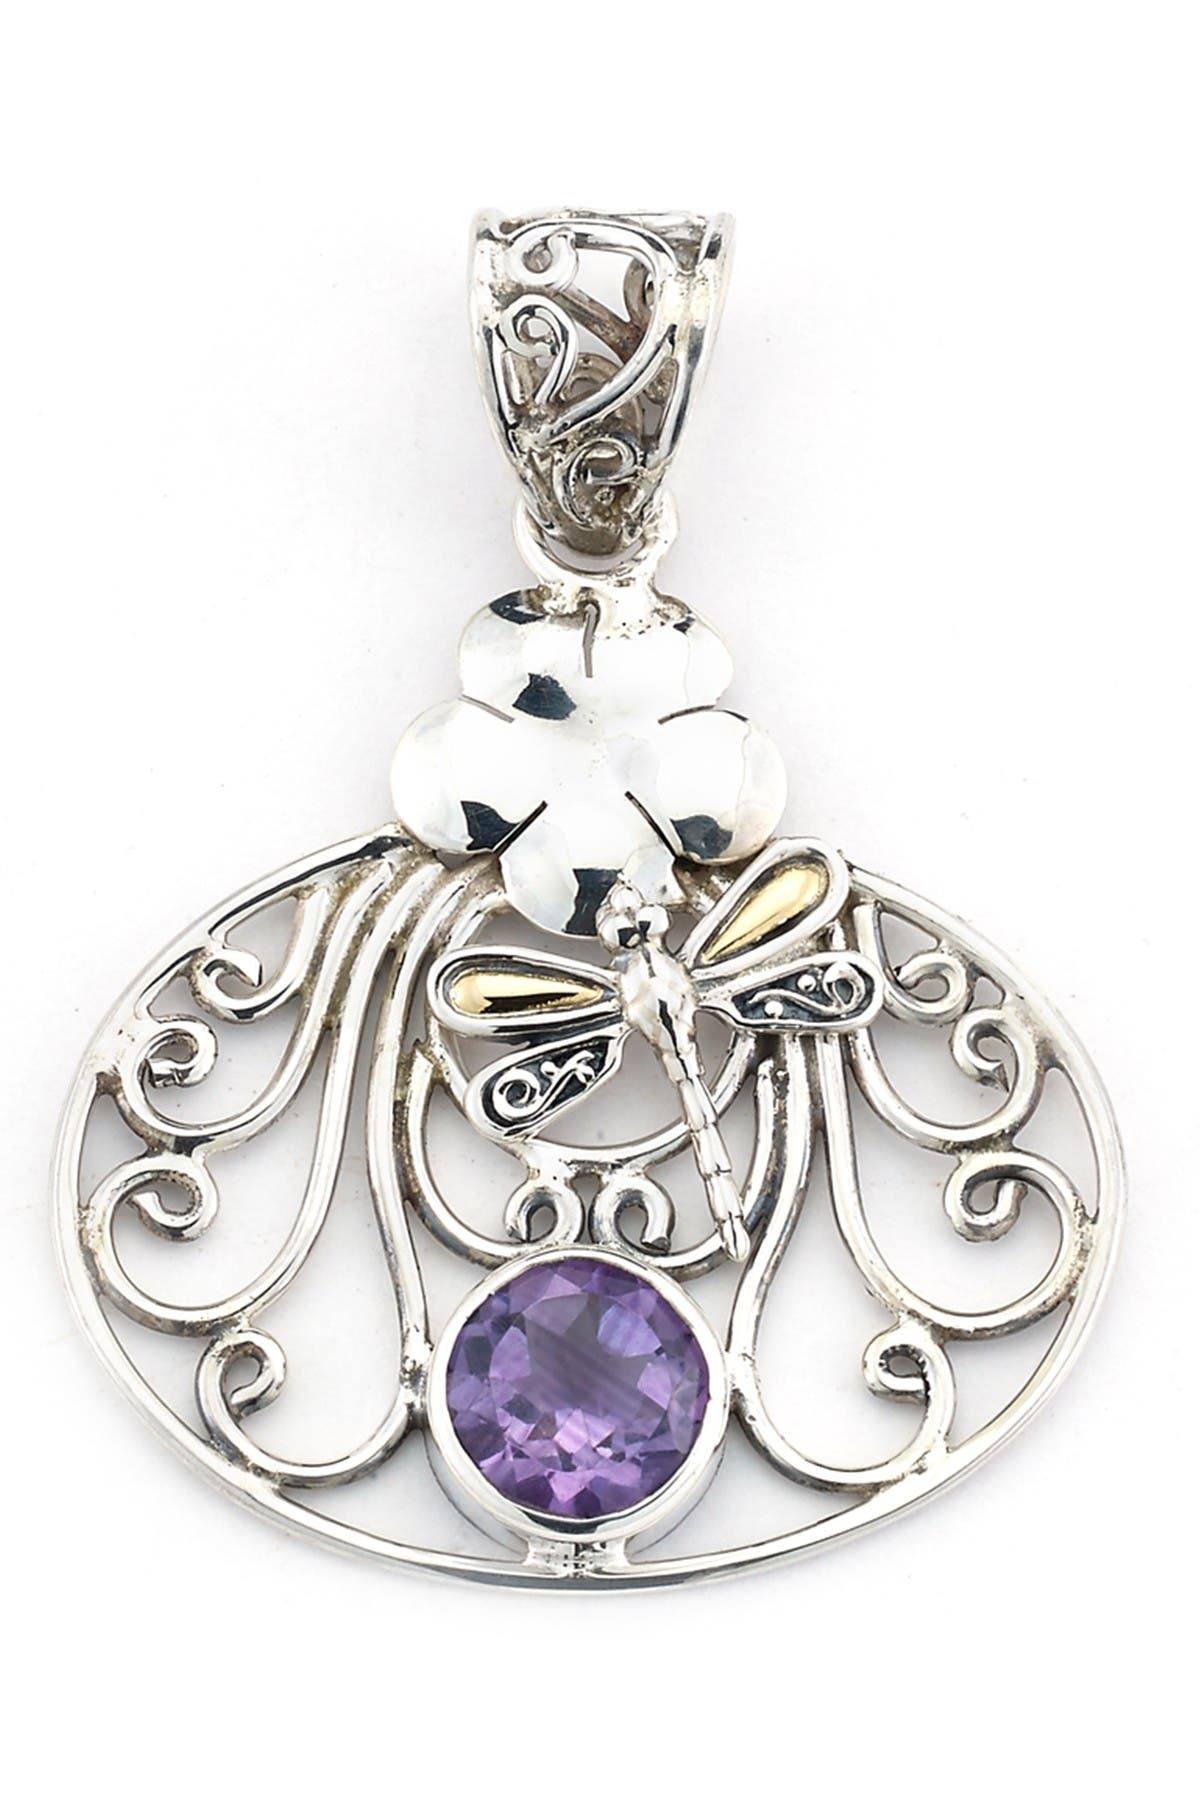 Image of Samuel B Jewelry Sterling Silver & 18K Gold Amy Dragonfly Pendant